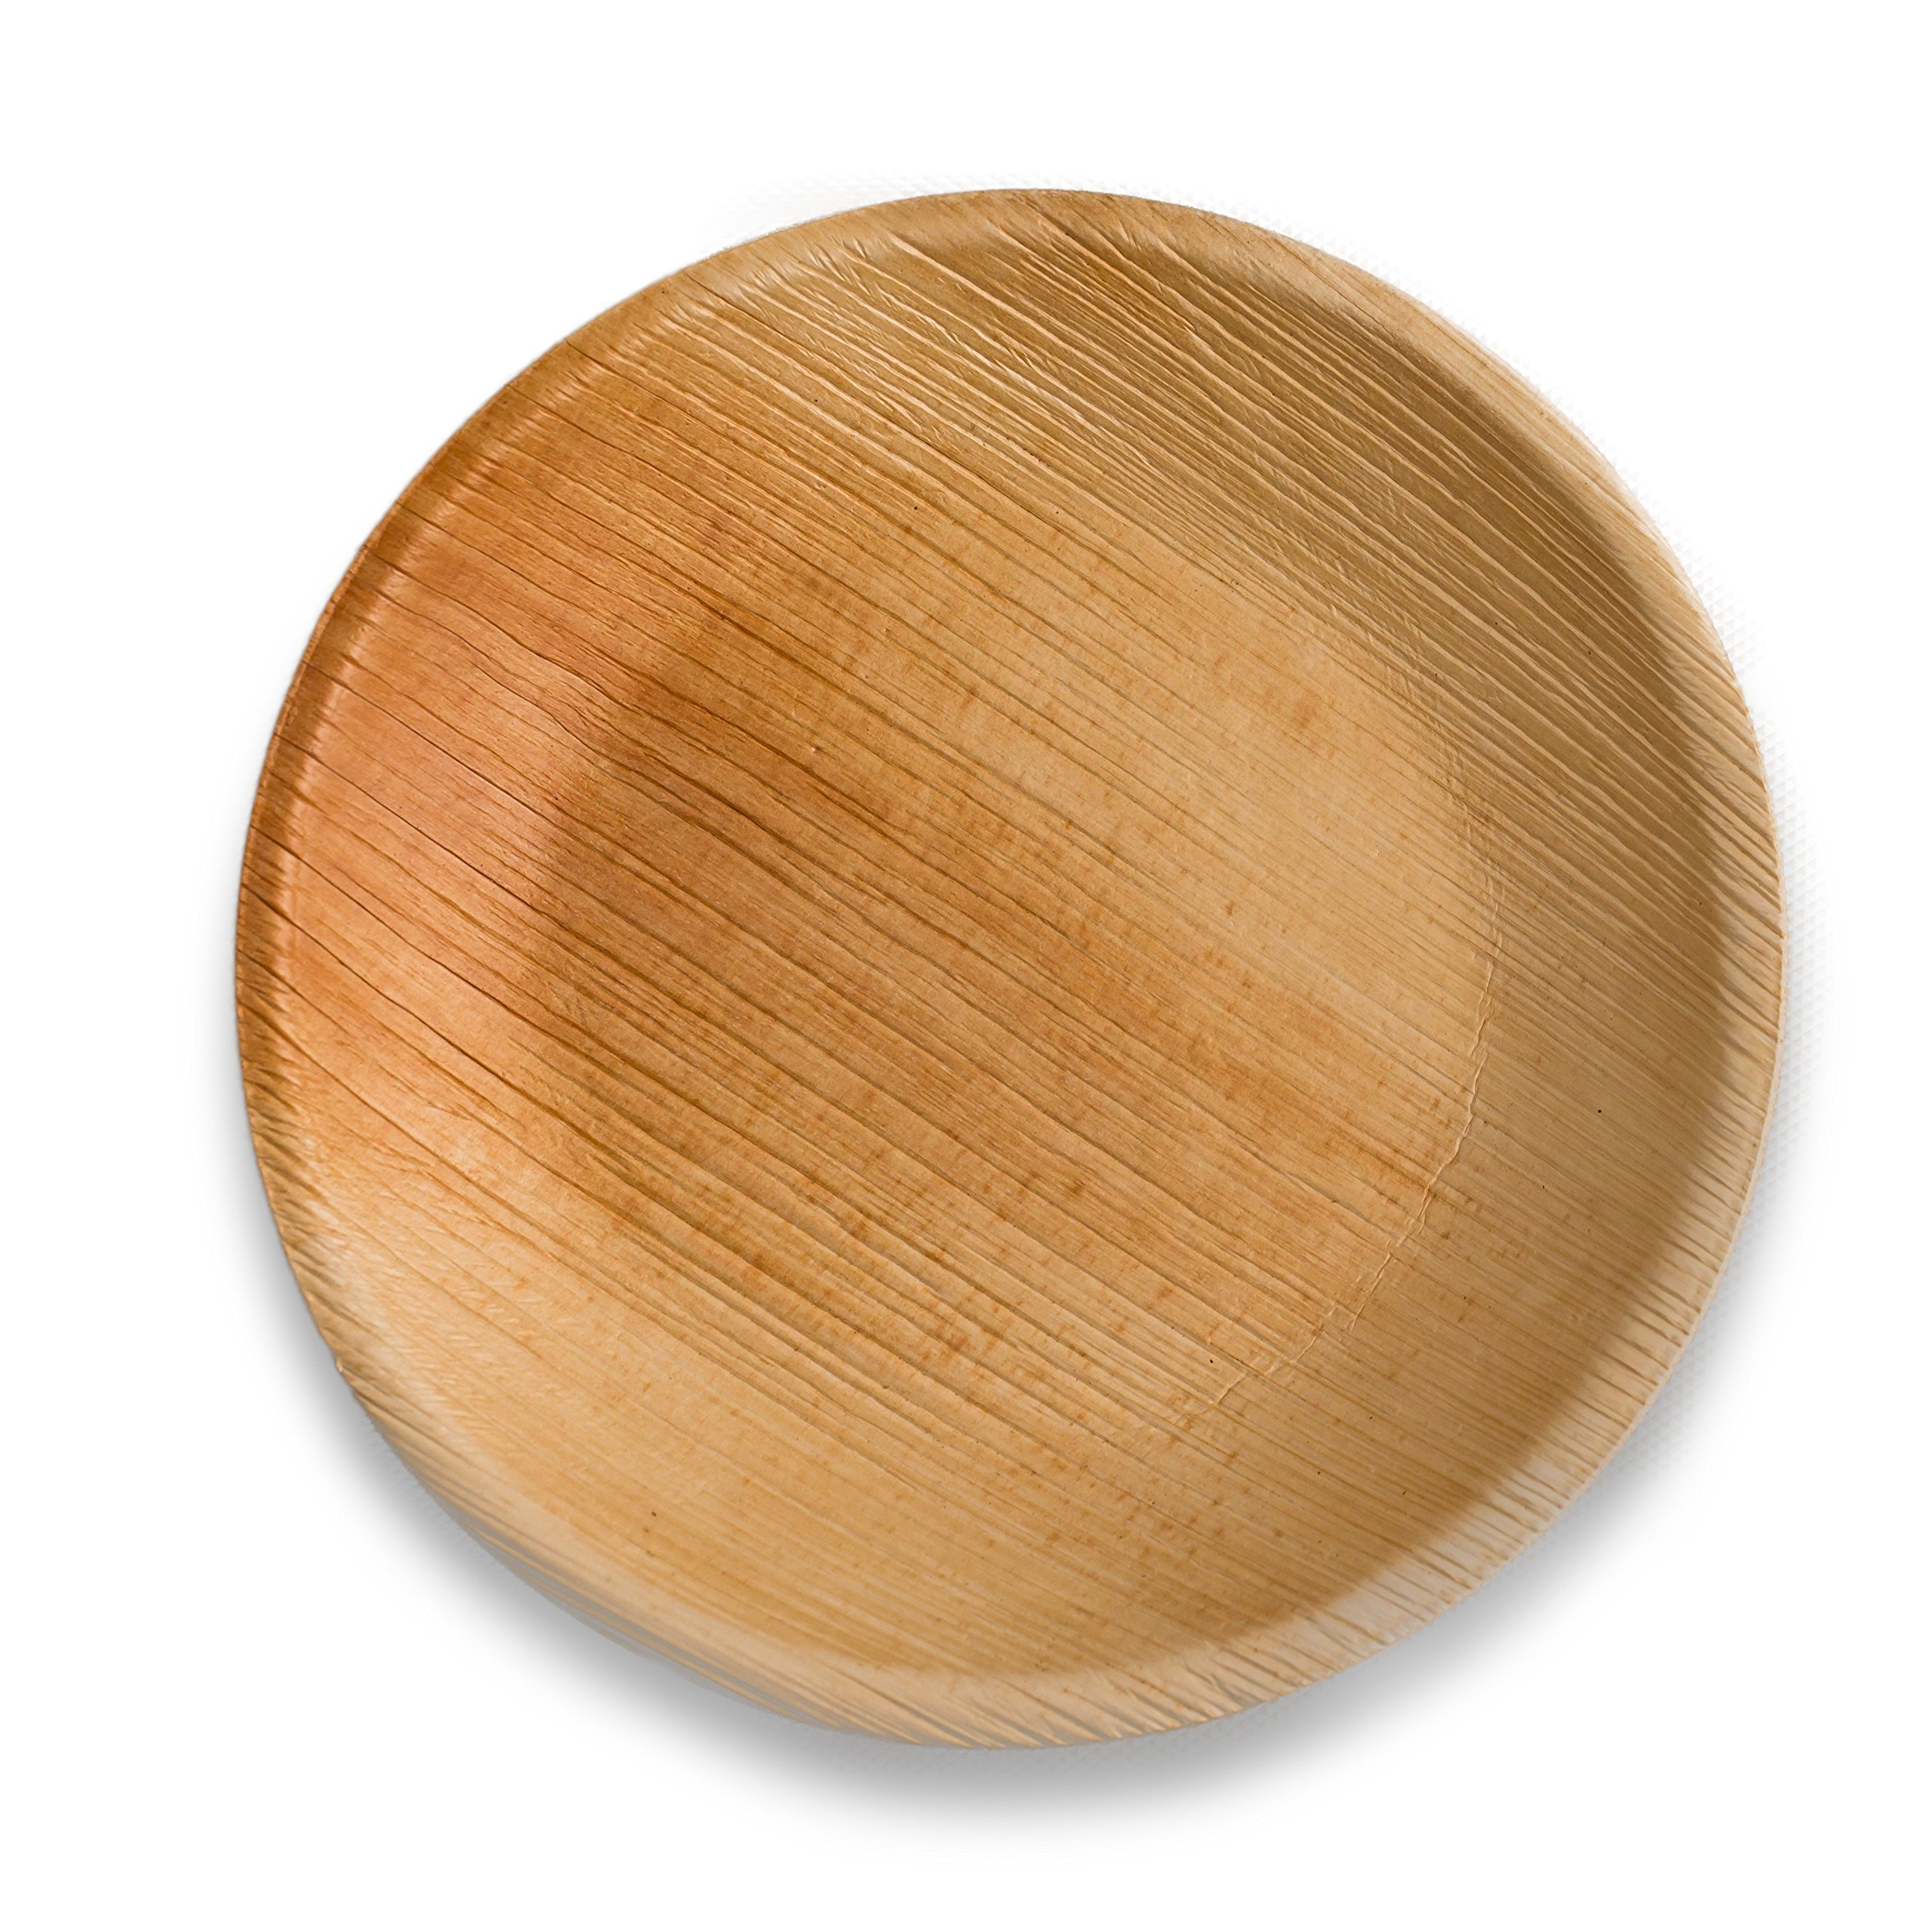 Disposable Plates - Heavy Duty & Eco Friendly – Better than Wood & Bamboo- Round Shape Size 9''-Made of Palm Leaf by Adaaya (Image #2)